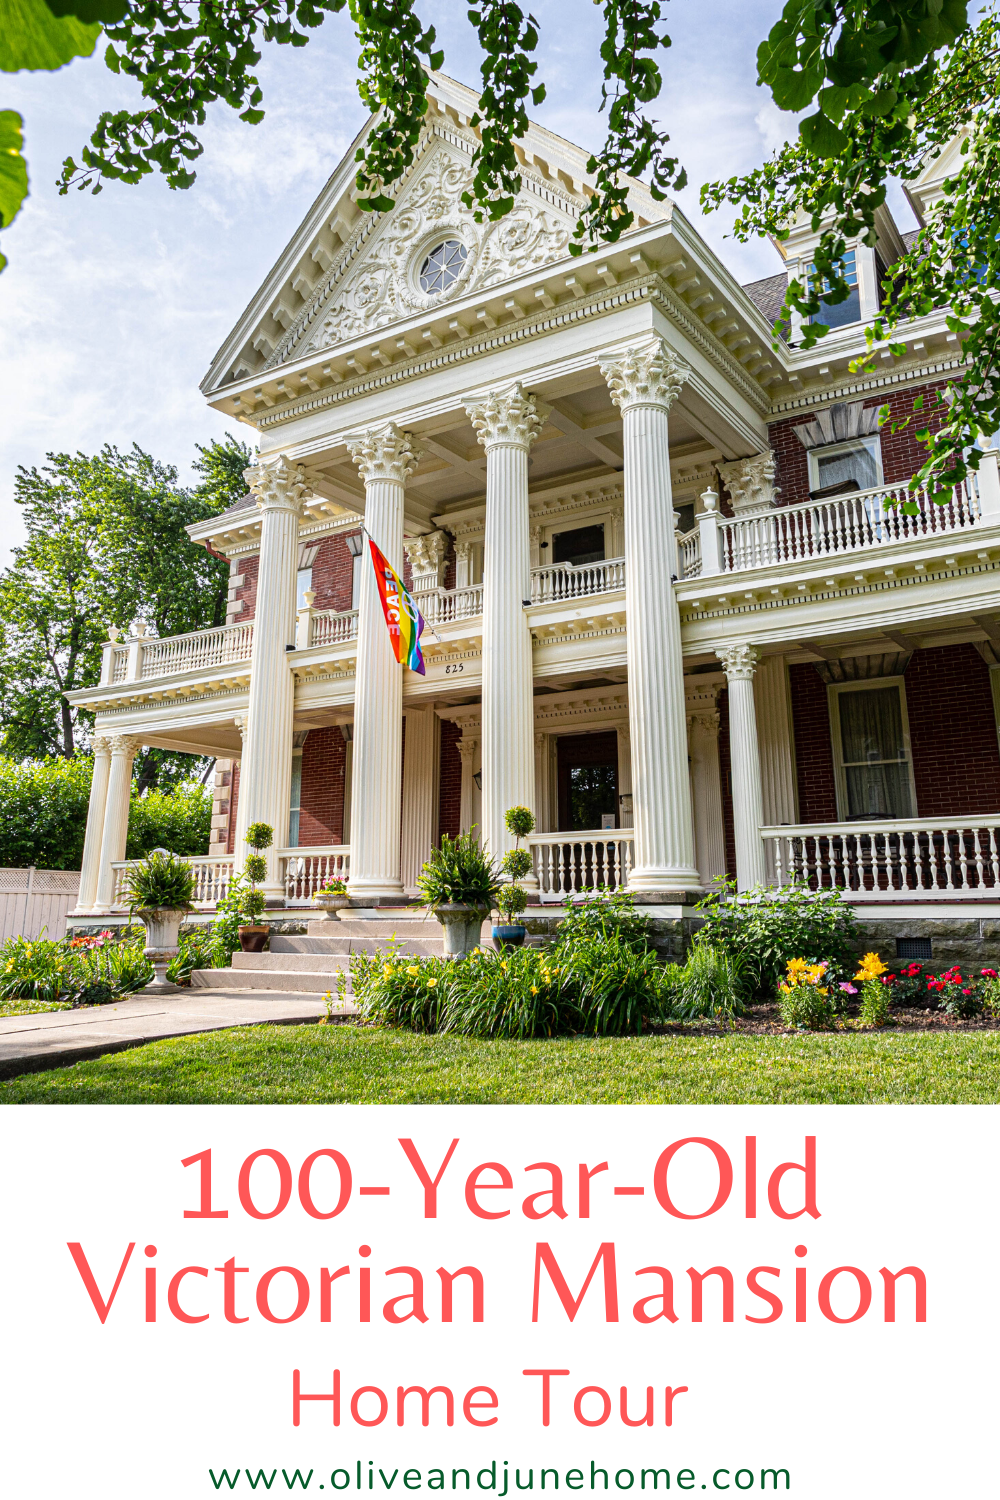 Who doesn't want a sneak peek at a beautiful old house? In my post, I share one of the most beautifully restored historic homes I've ever seen. You don't want to miss this gorgeous Victorian mansion! #HistoricHome #VictorianMansion #OldHouse #HomeTour